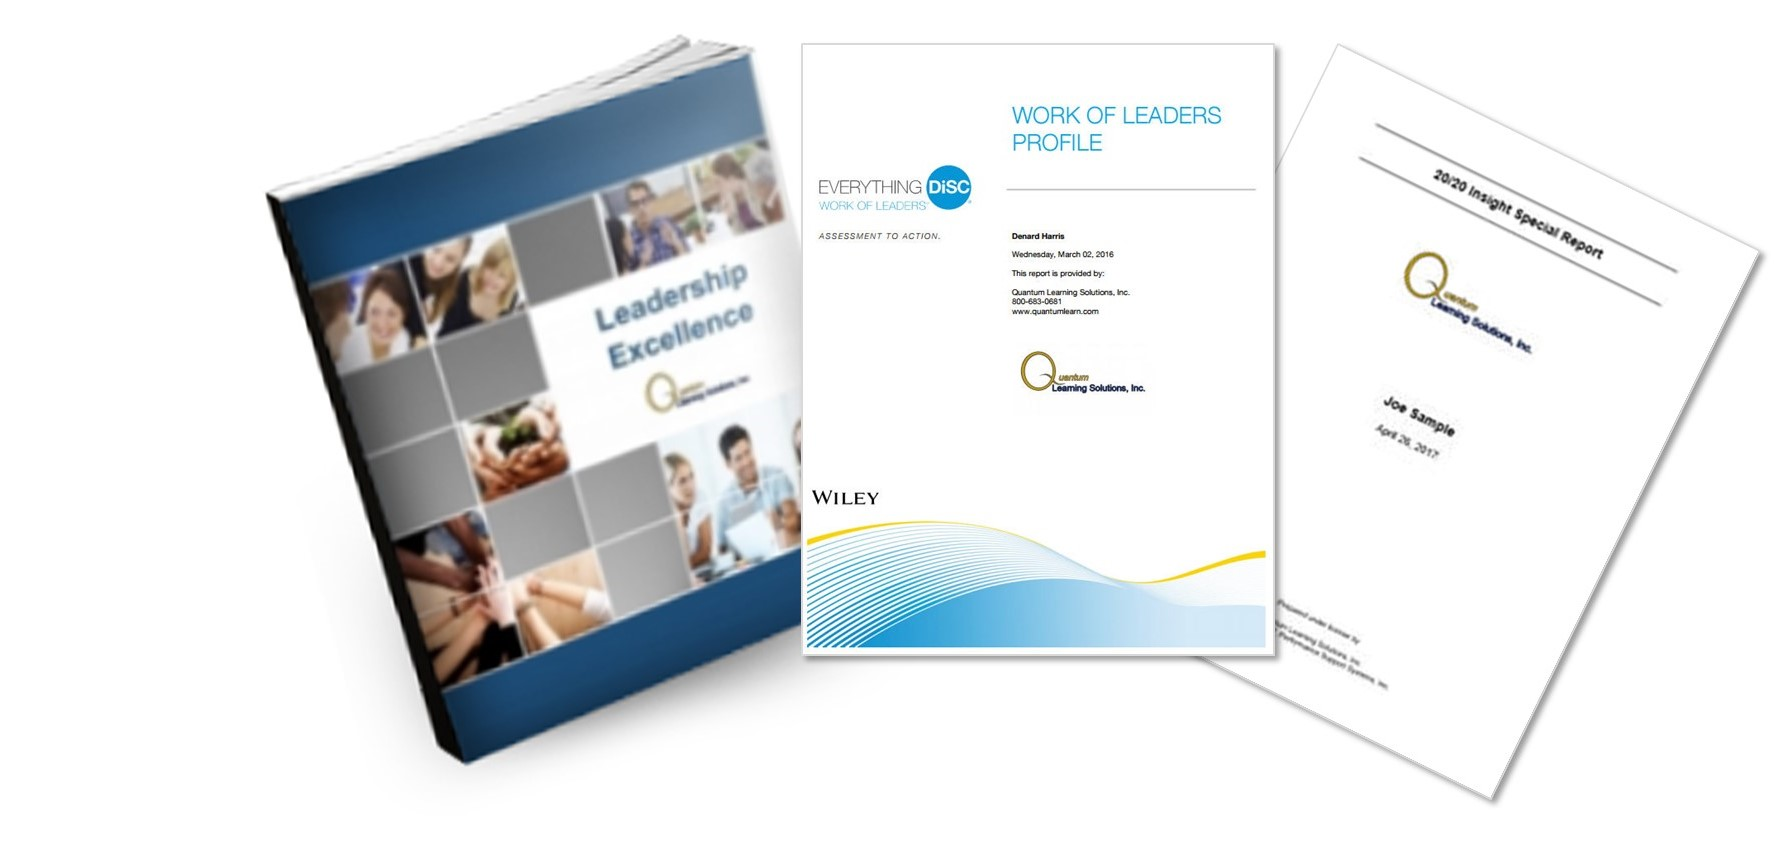 Leadership Excellence - Participant Materials - Quantum Learning Solutions.jpg